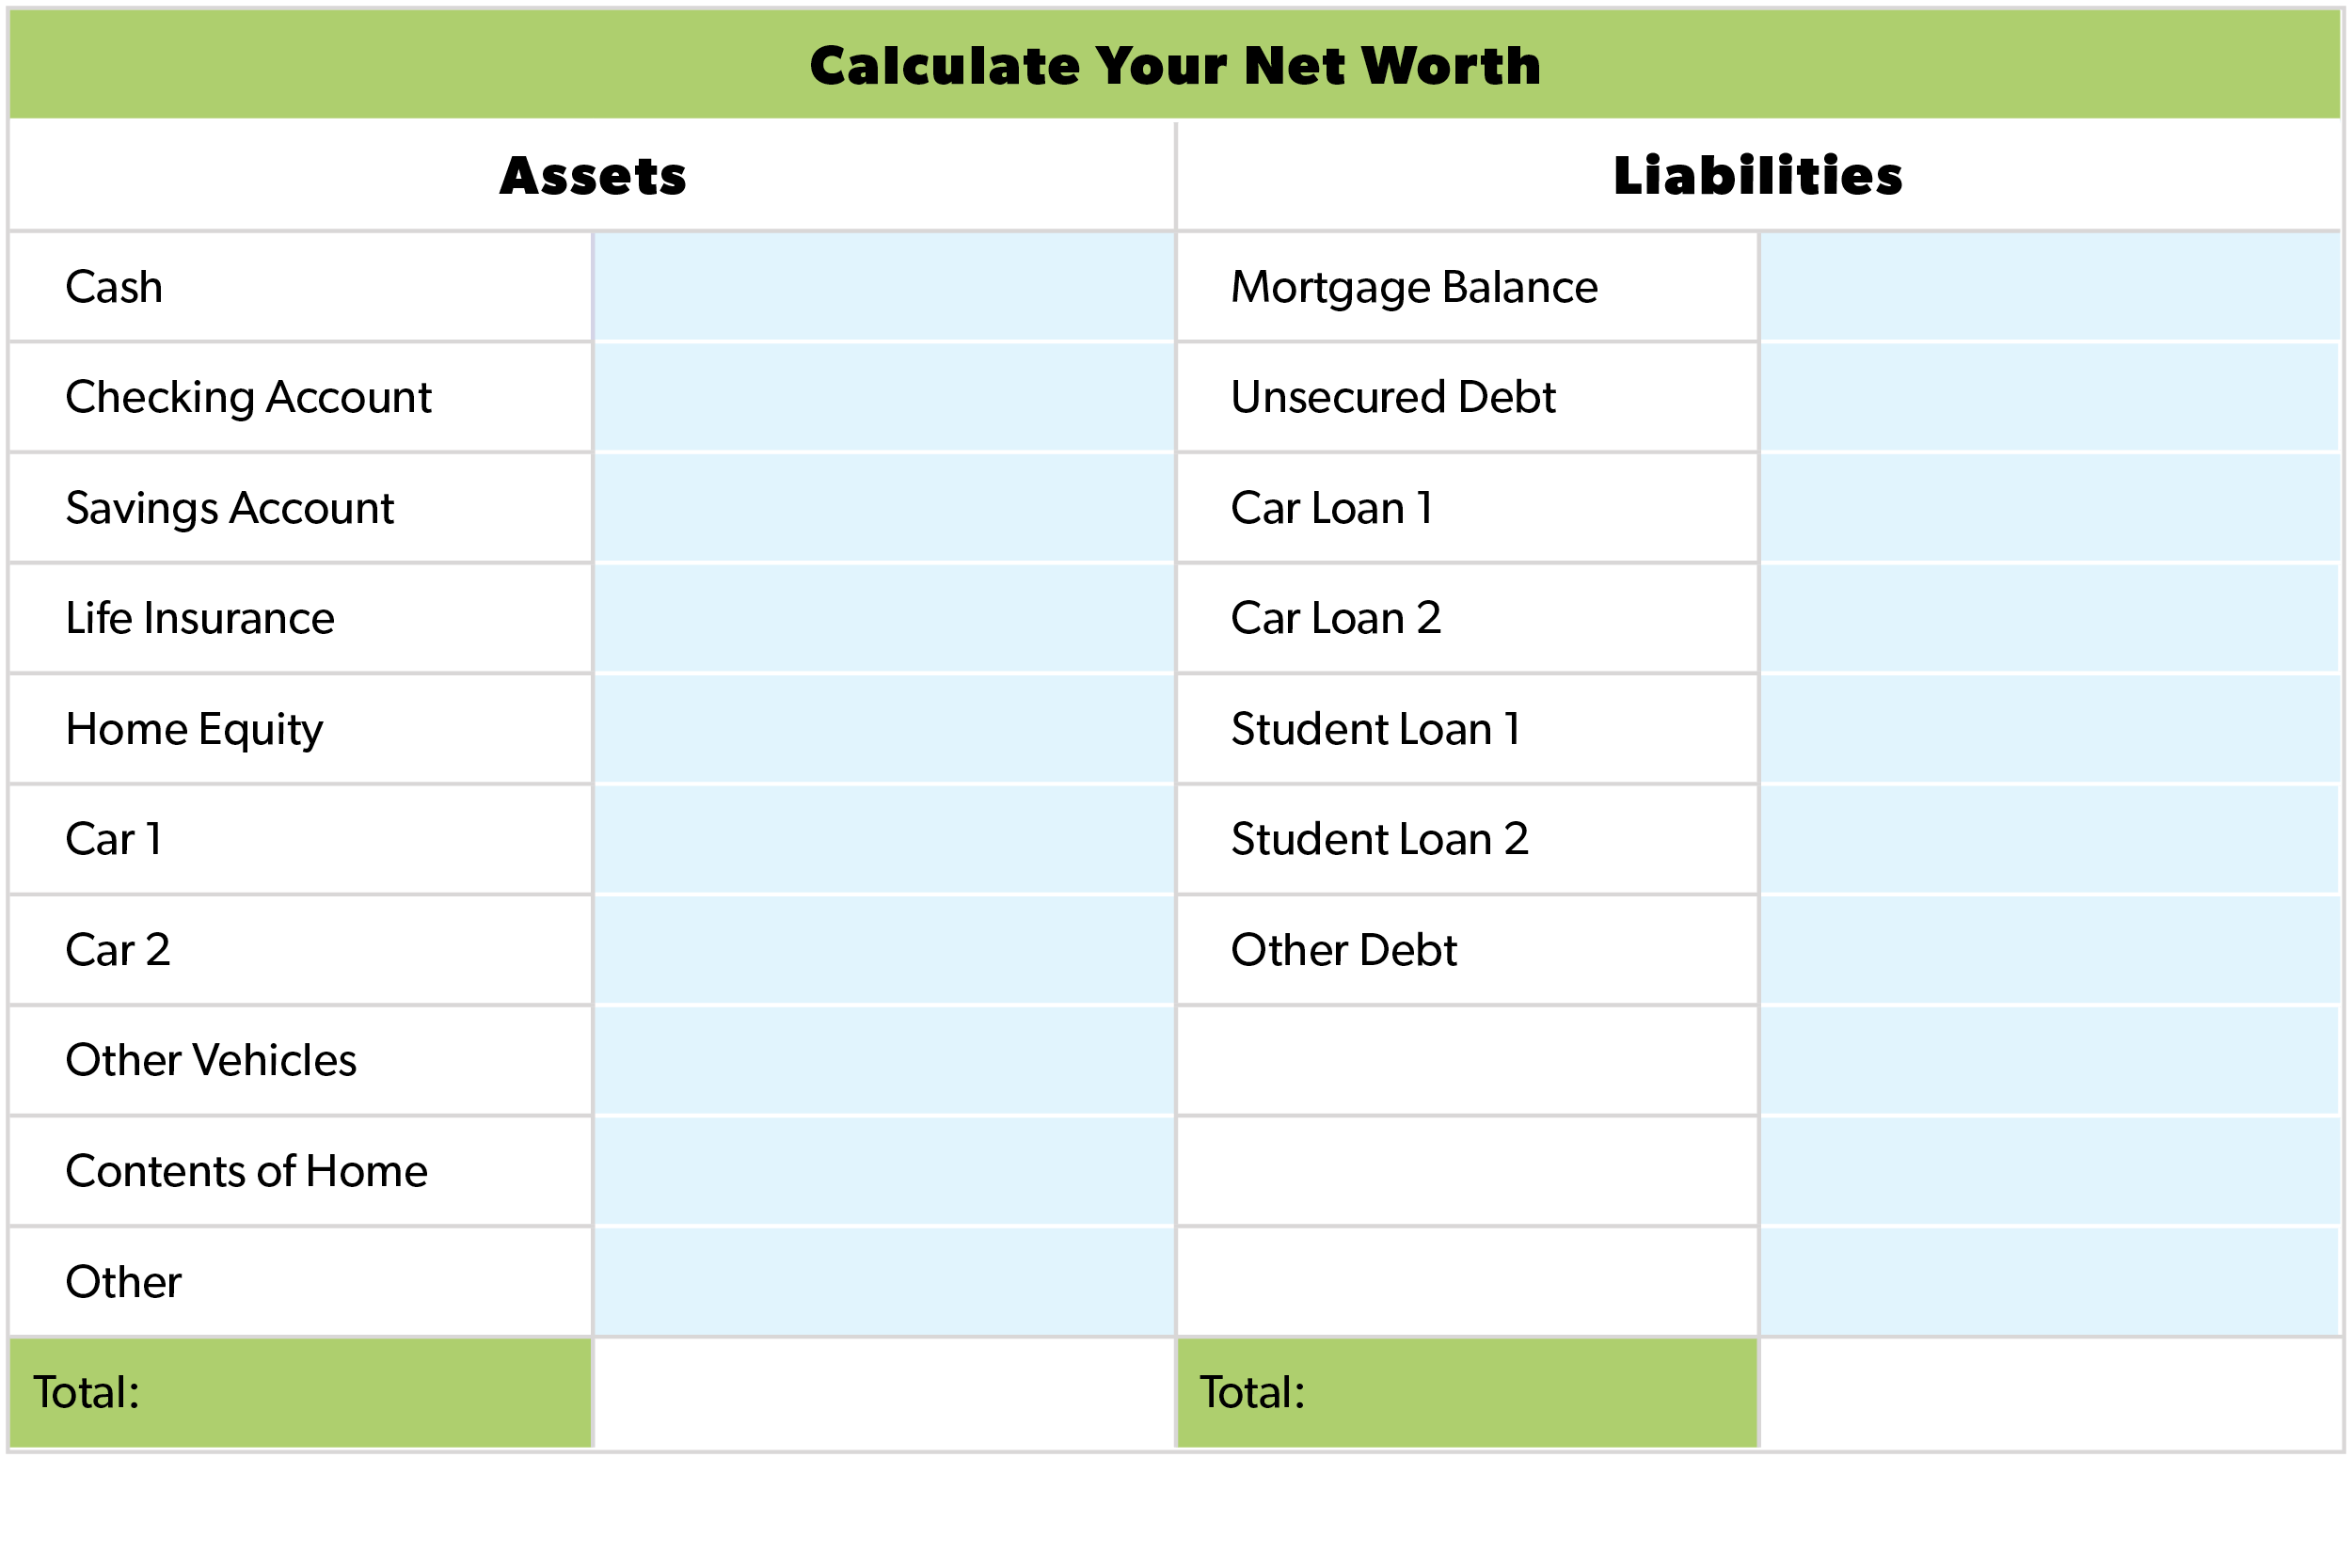 Worksheets How To Calculate Your Net Worth Worksheet